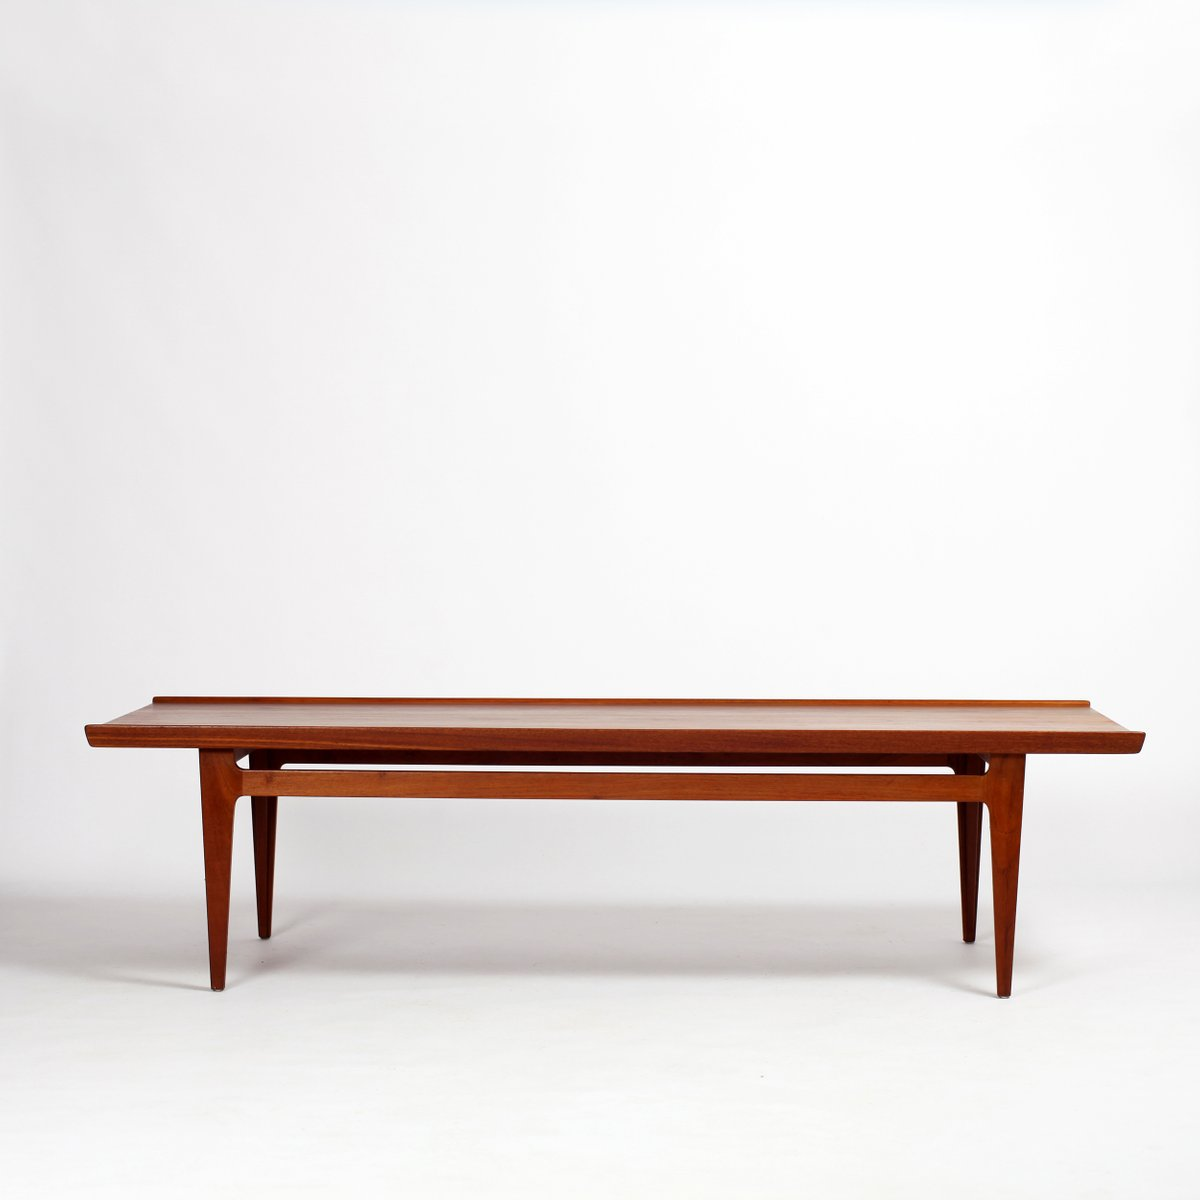 Teak Coffee Table South Africa: Large Teak Coffee Table By Finn Juhl For France